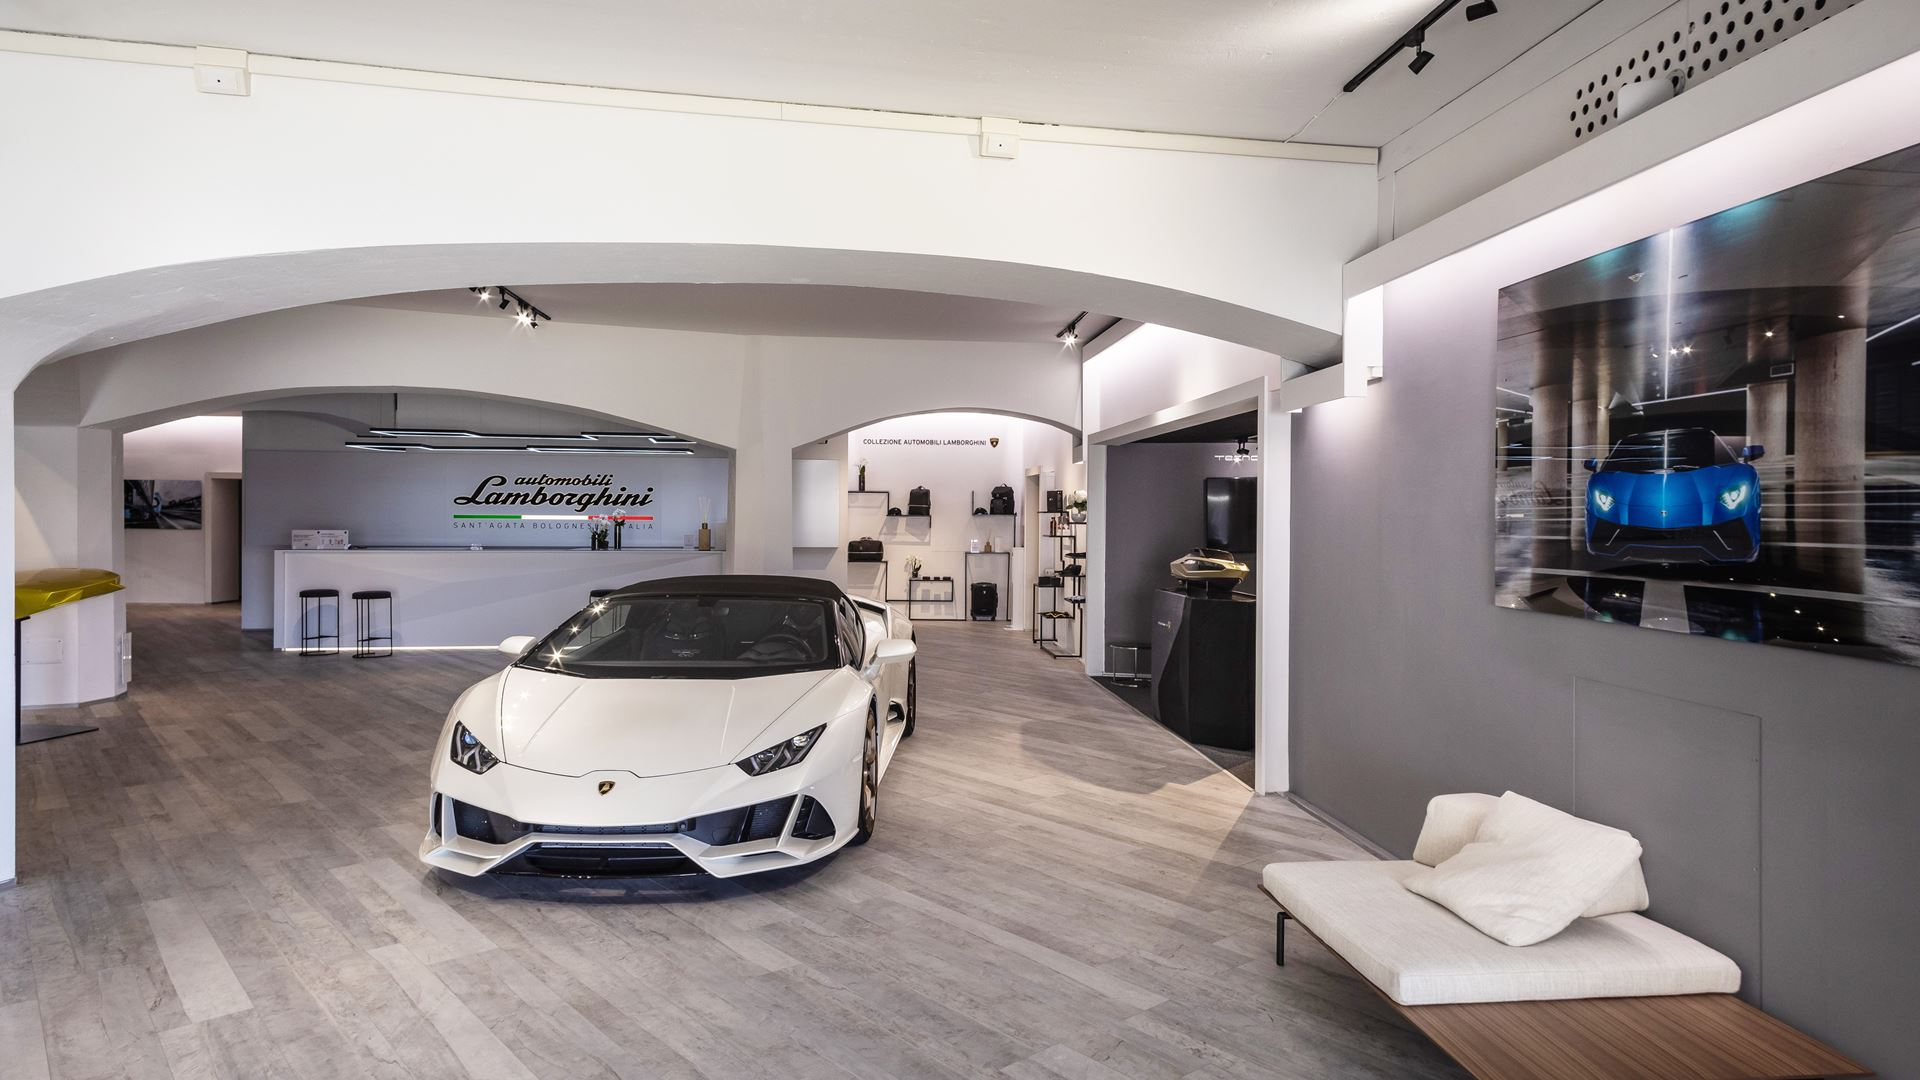 Lamborghini Lounge in Porto Cervo: exclusivity, lifestyle and product innovations, until September - Image 2